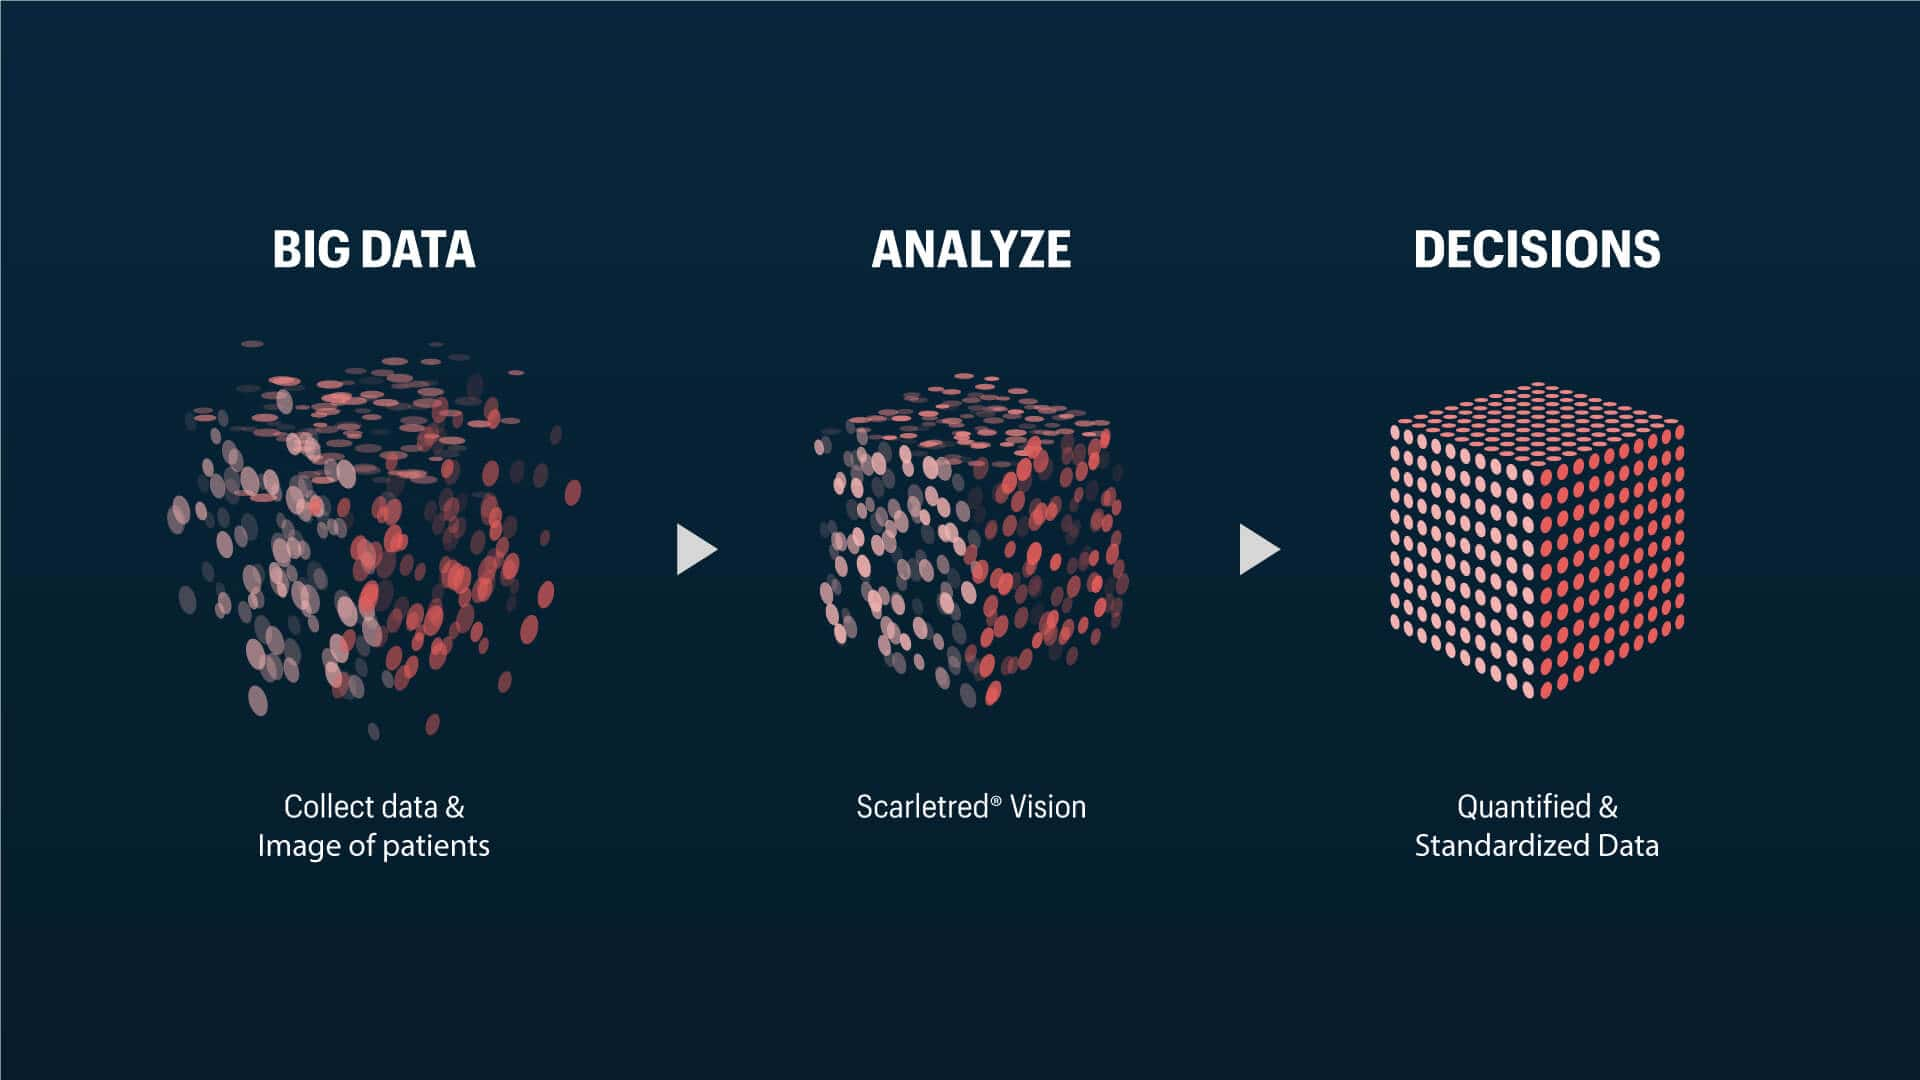 Organizing big data into smart data with ScarletredVision to make decisons